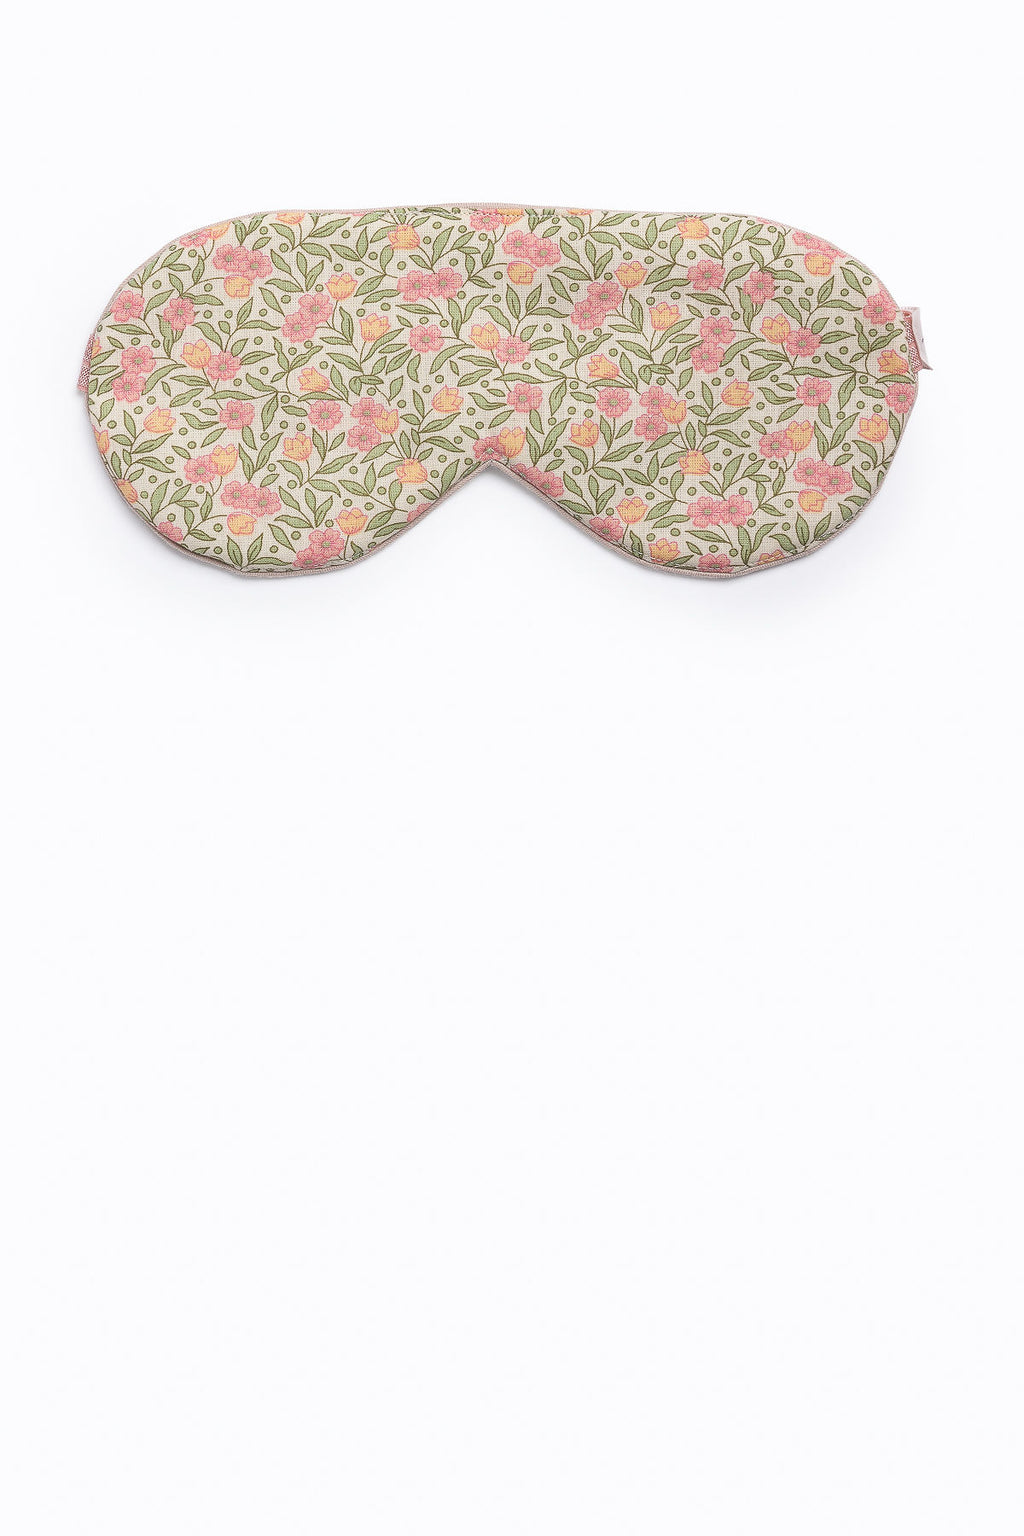 Cotton Sleep Mask in Tropical Florals